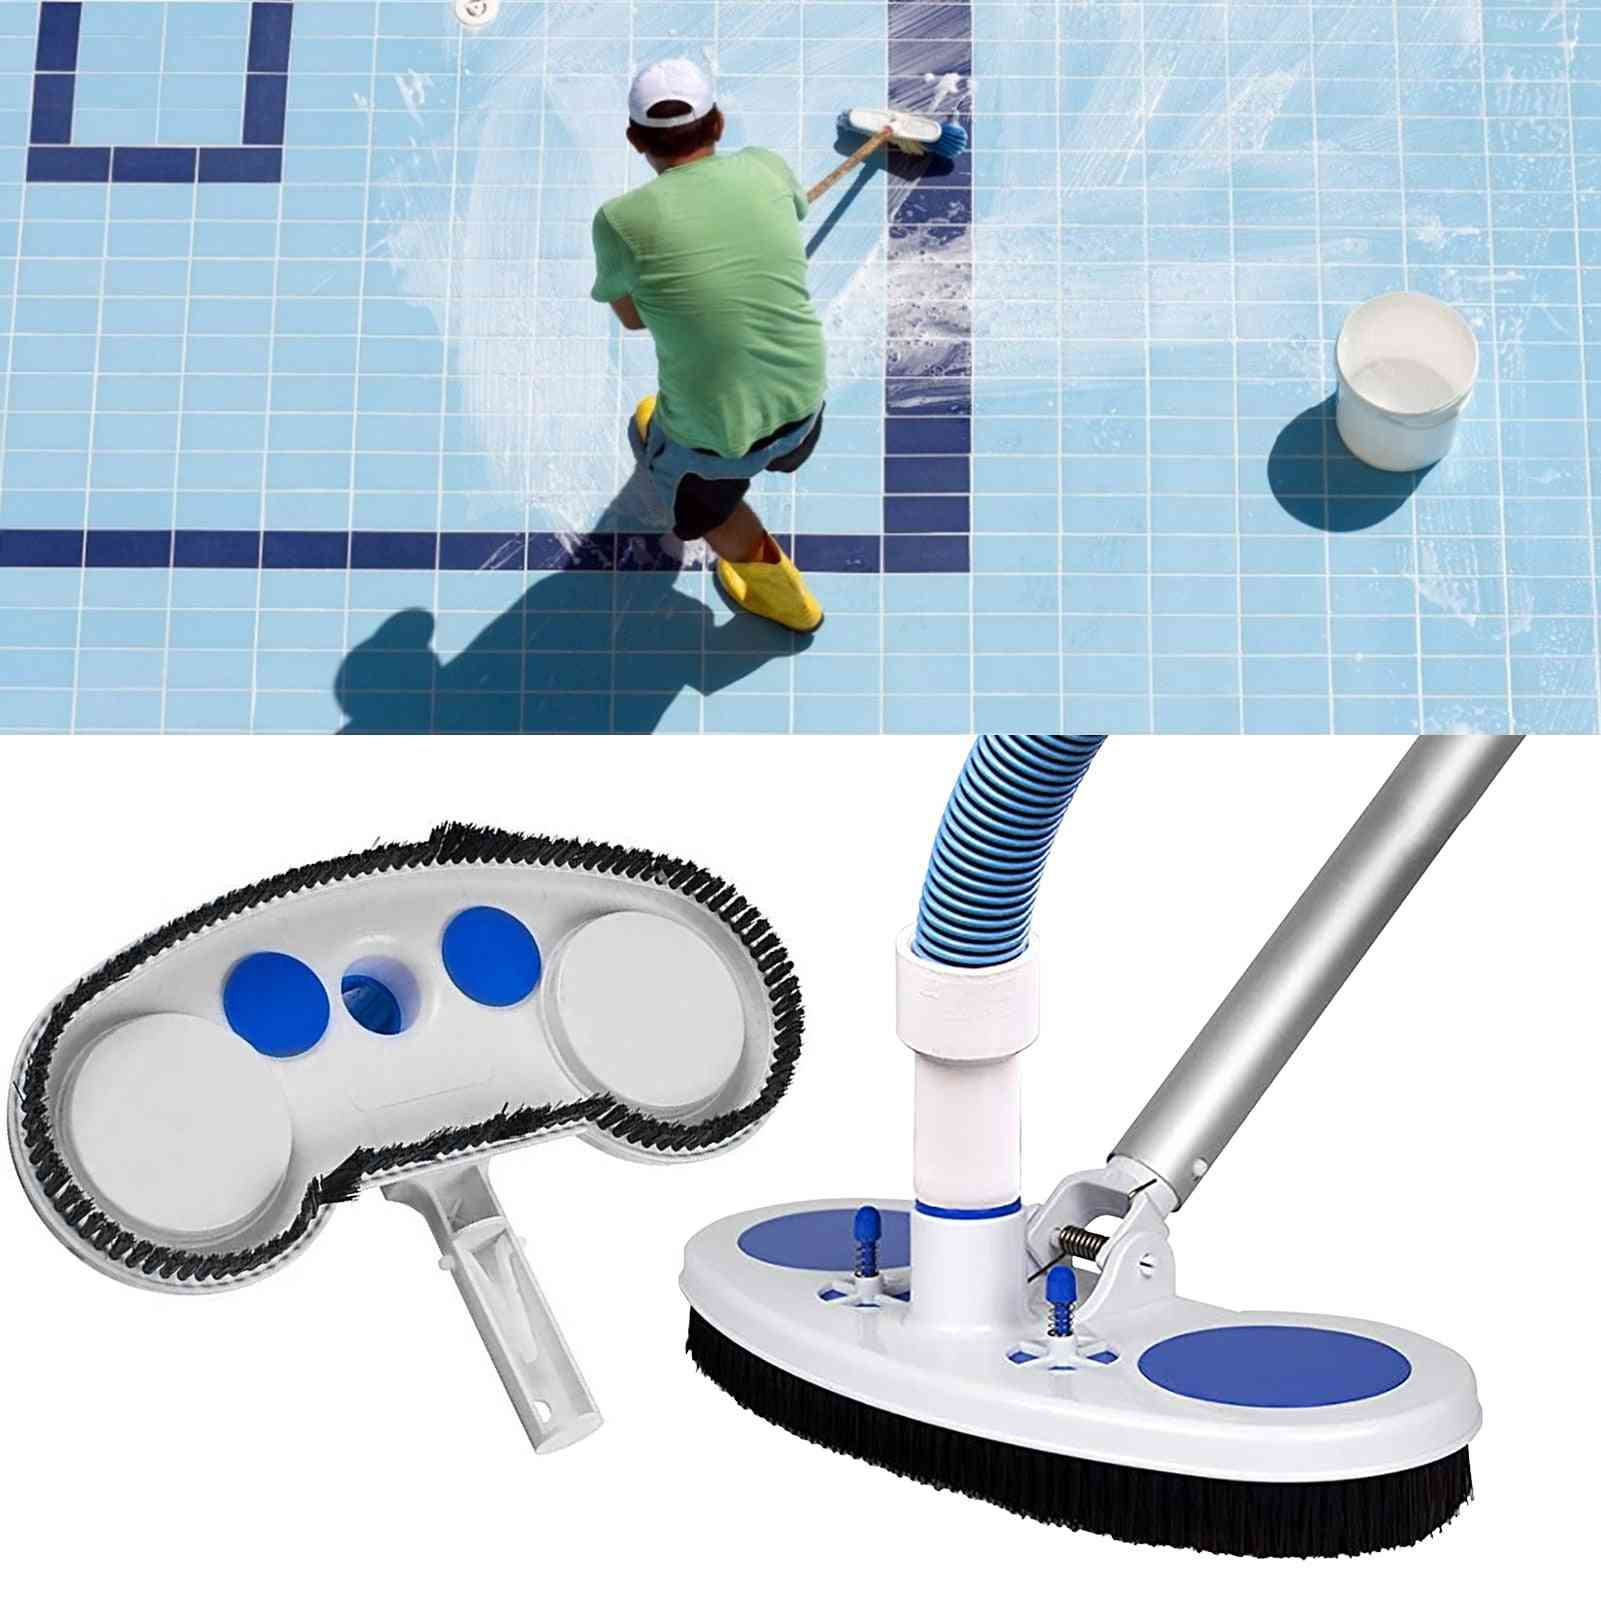 Swimming Pool Vacuum Suction Head, Cleaning Brush, Spa Sewage Cup, Cleaning Tools